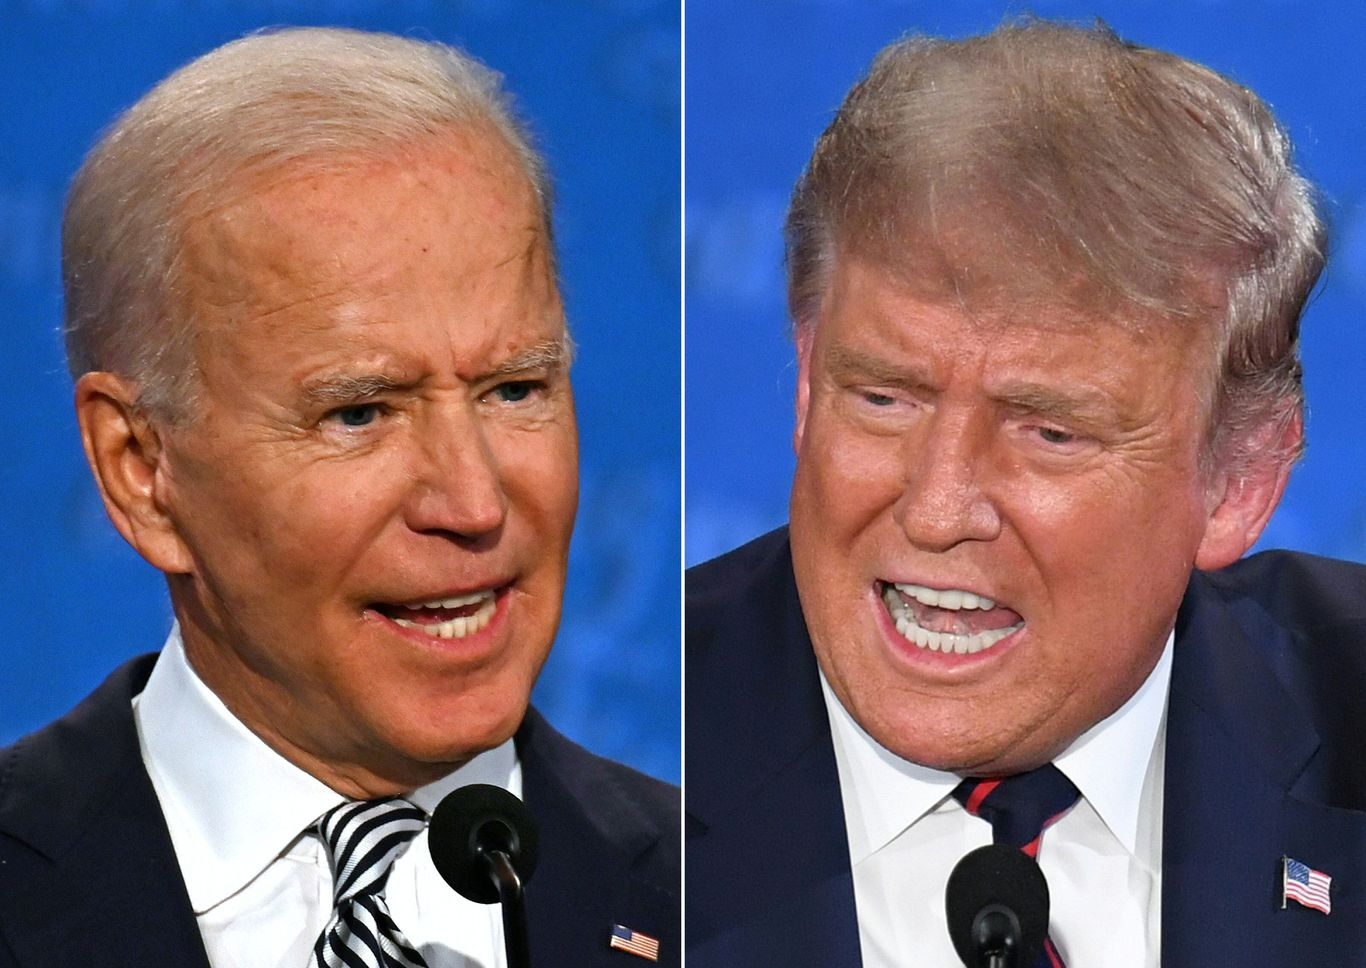 Polls: Biden's lead over Trump extends to double digits with 30 days until election thumbnail